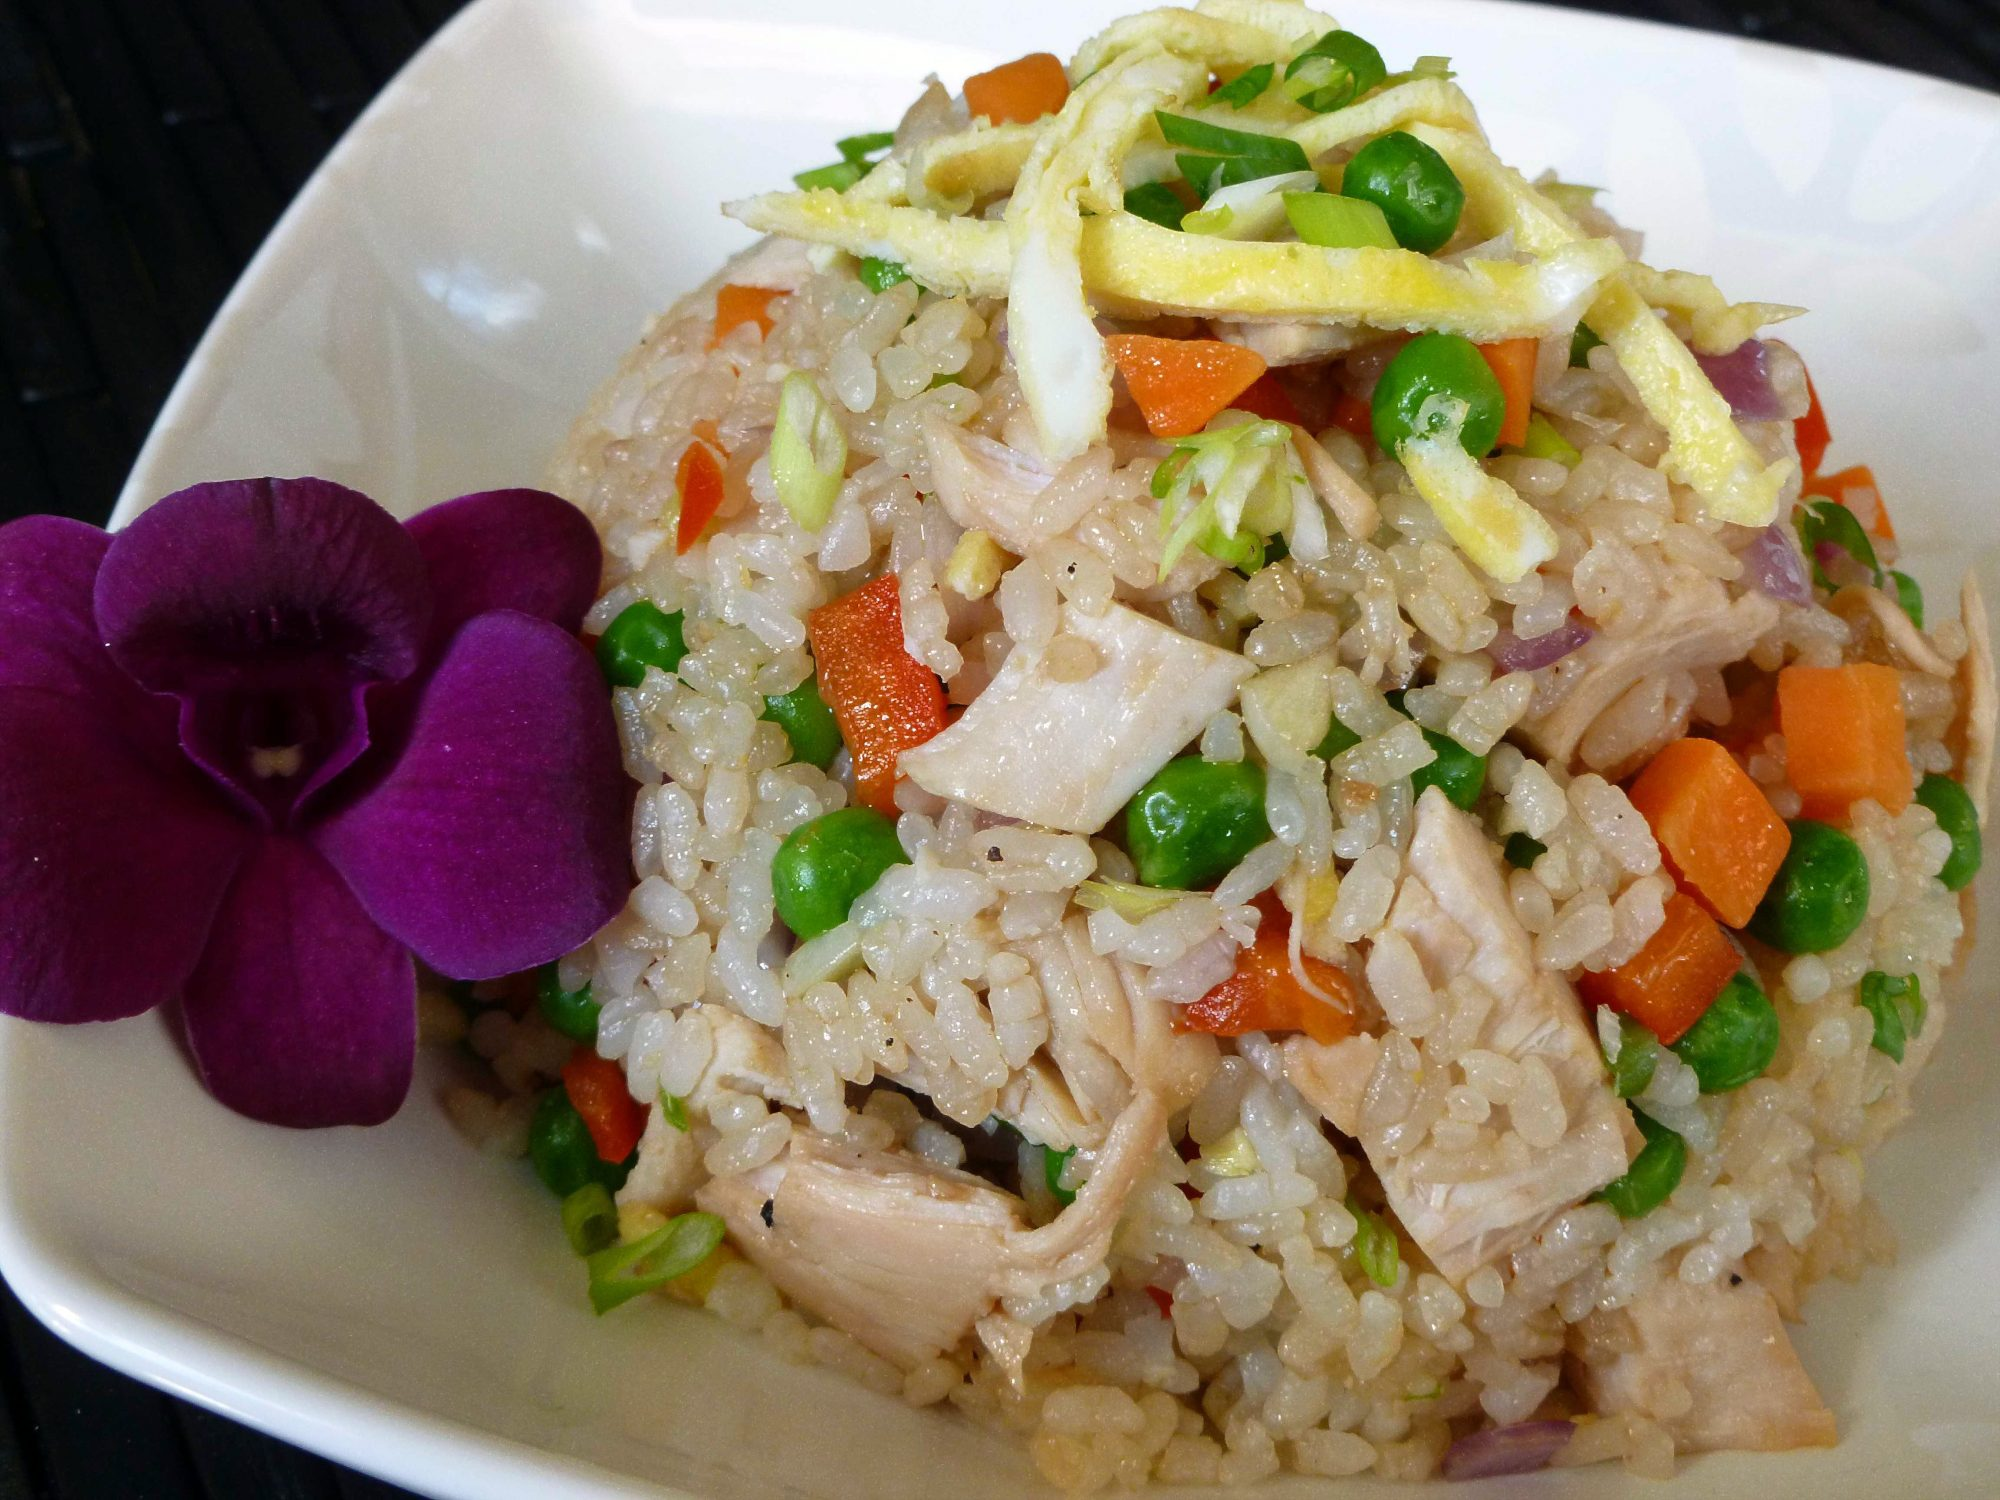 a scoop of fried rice with chicken, diced carrot, and peas in a bowl garnished with strips of cooked egg